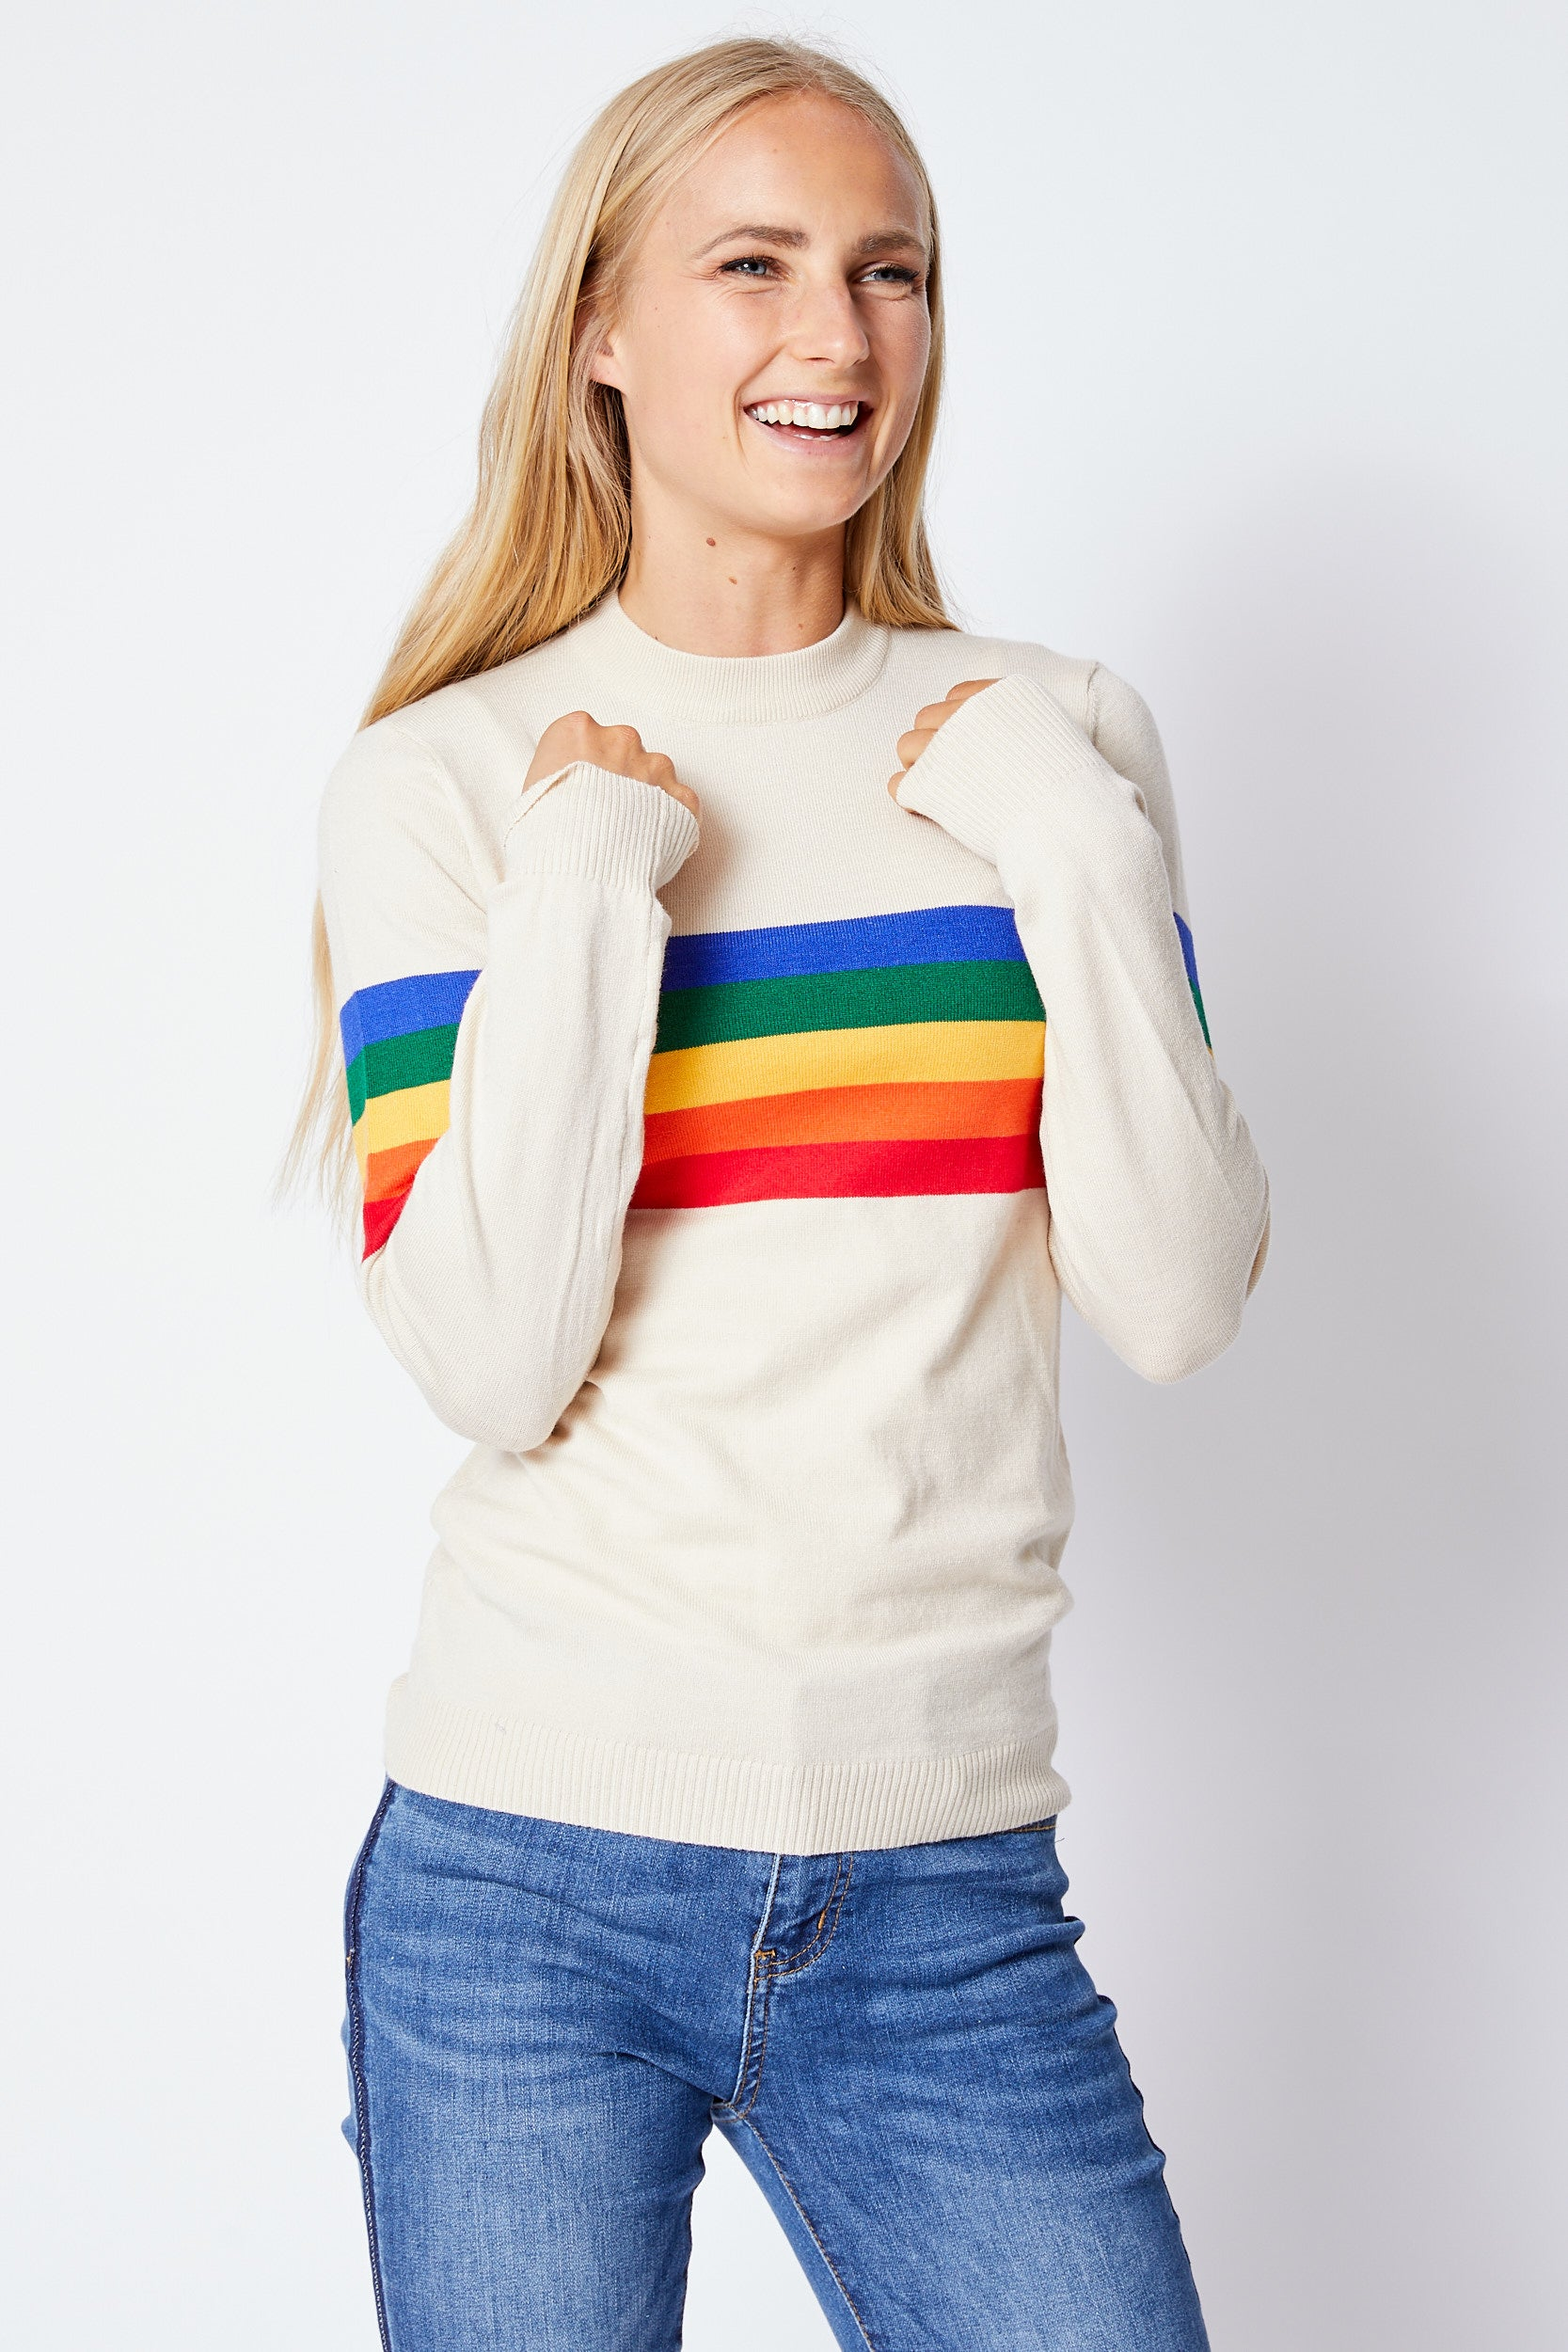 Rainbow Sweater - Jacqueline B Clothing